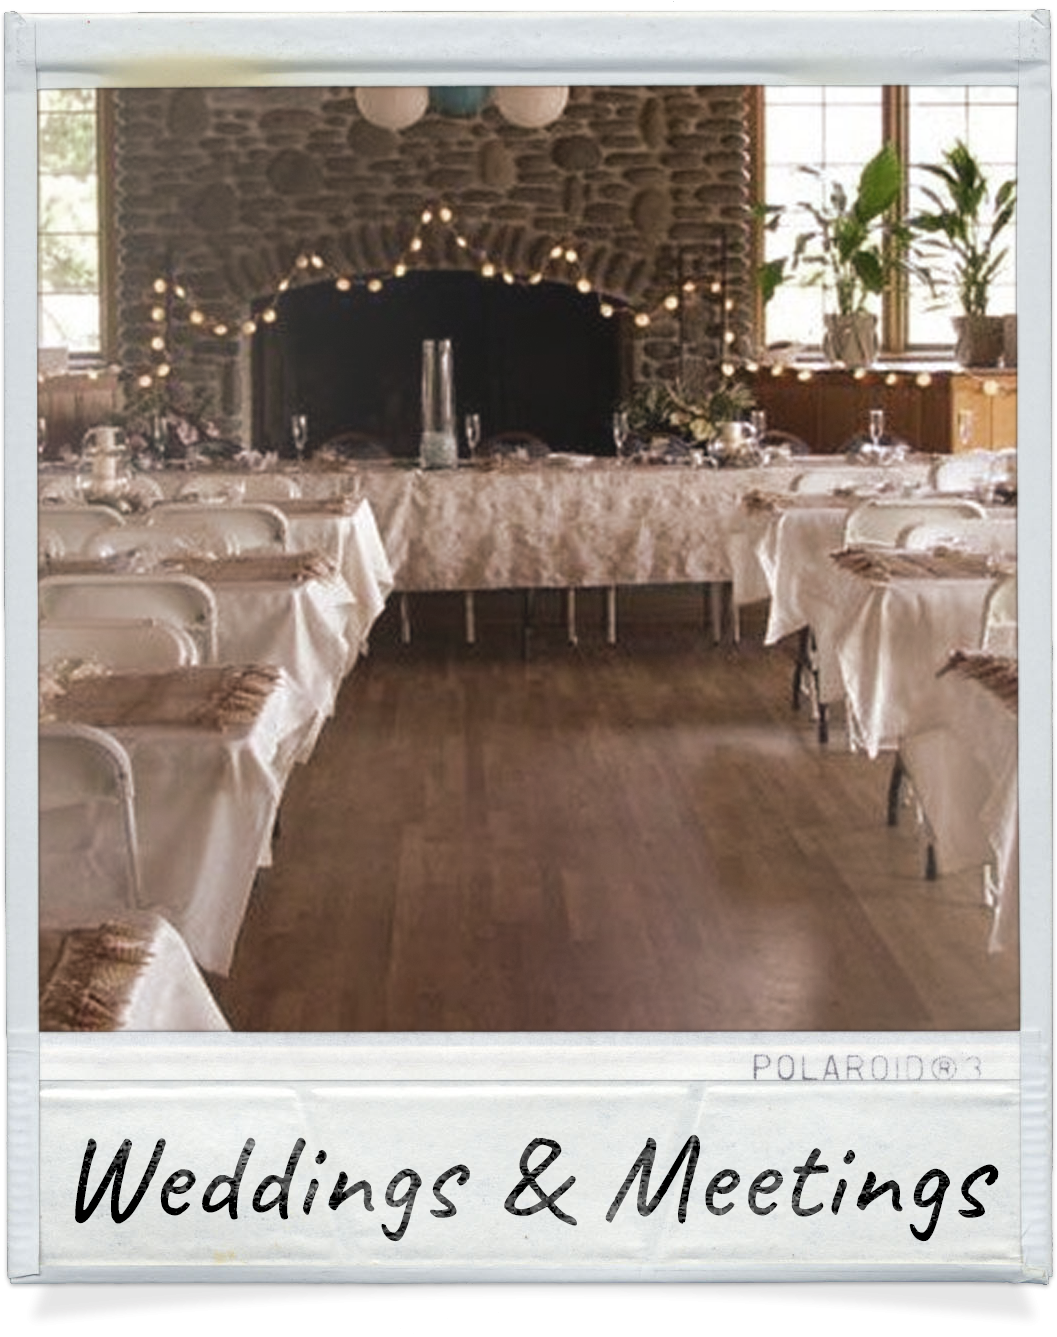 Wedding and Meeting venue